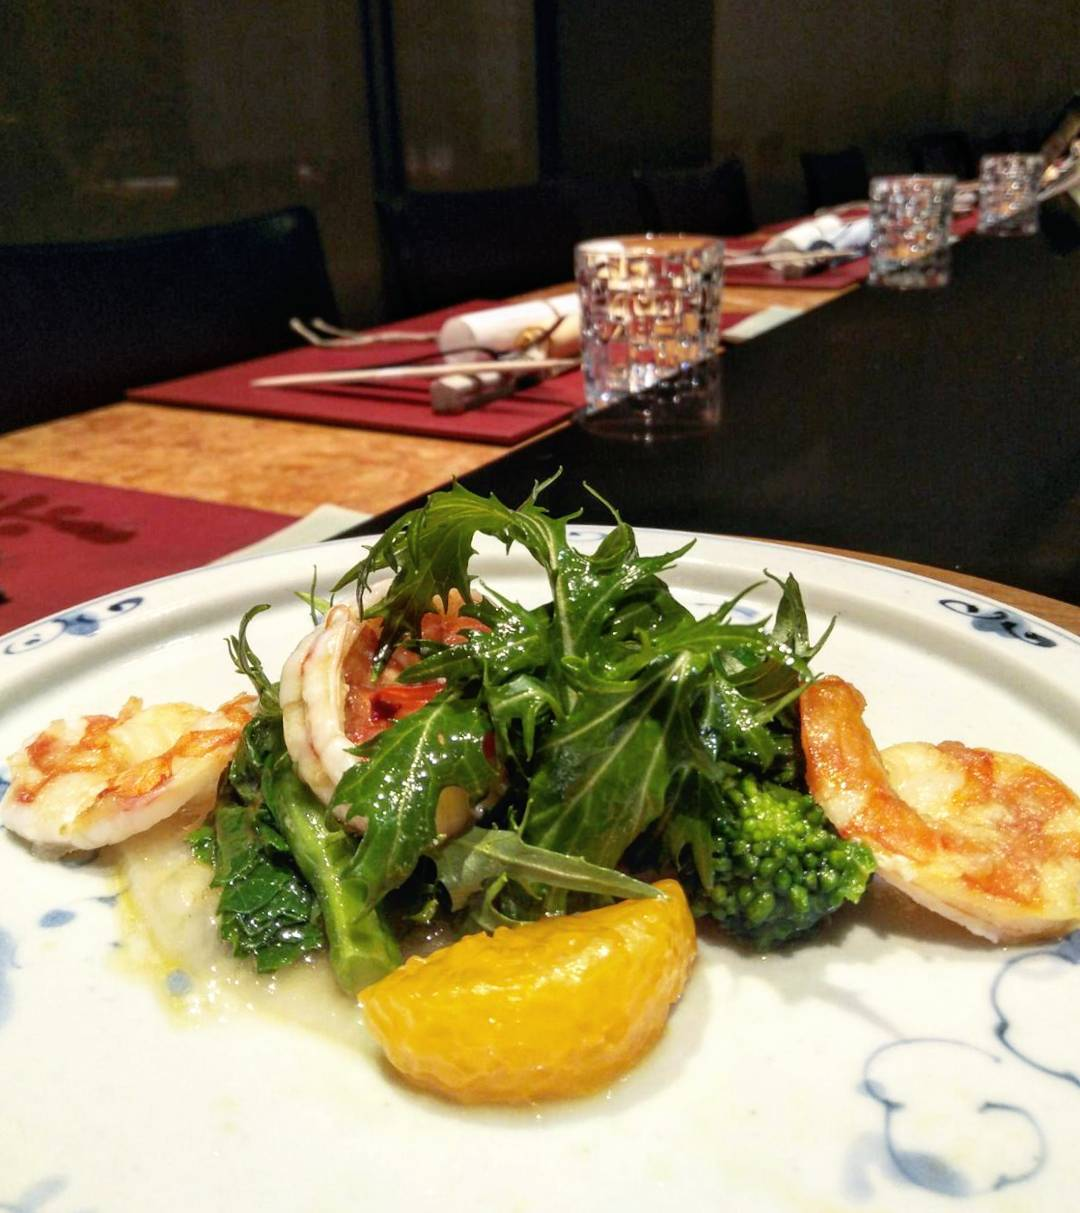 Feb 2018 cafes and restaurants (34) - Teppan by Chef Yonemura Prawn salad